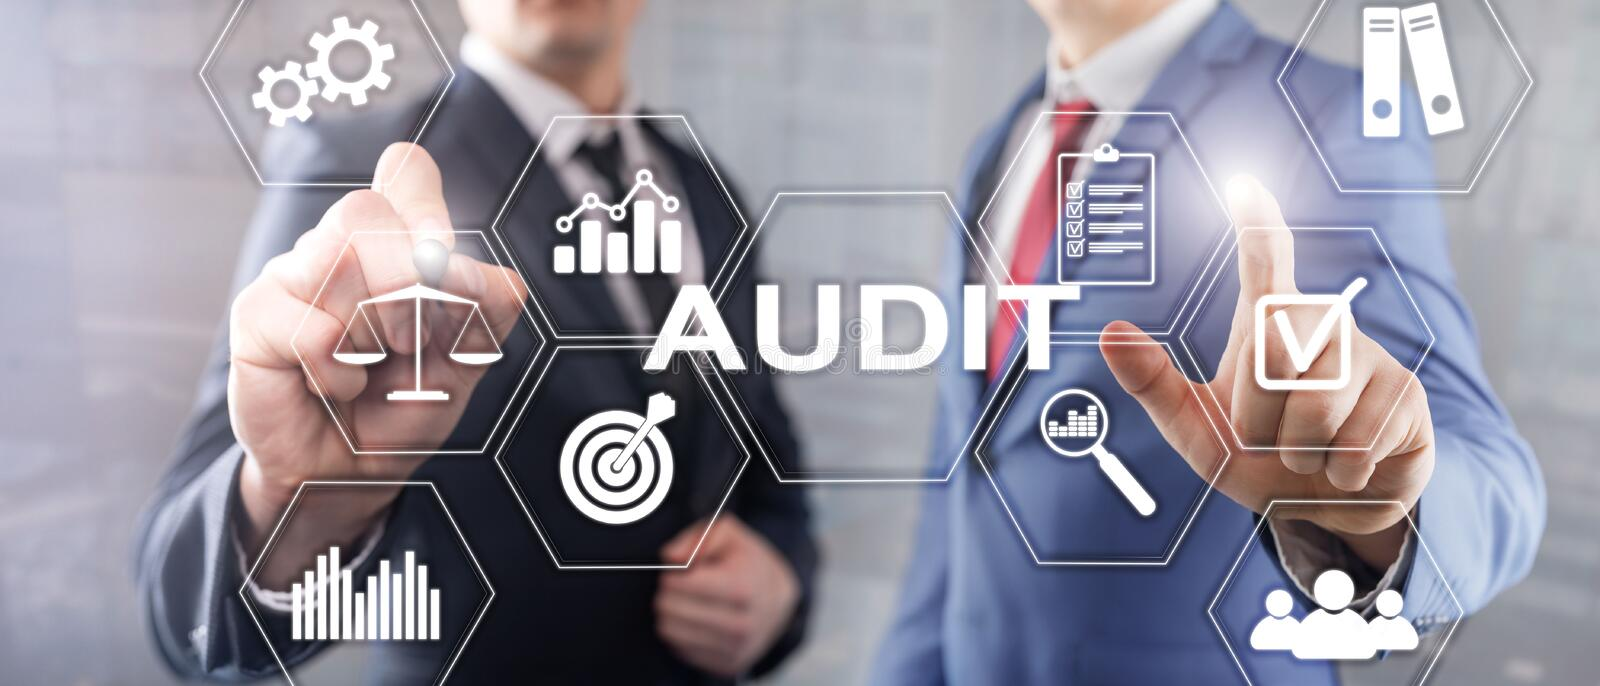 Audit business and finance concept. nalysis Annual Financial Statements, Analyze return on investment. Mixed media. Abstract background royalty free stock photo